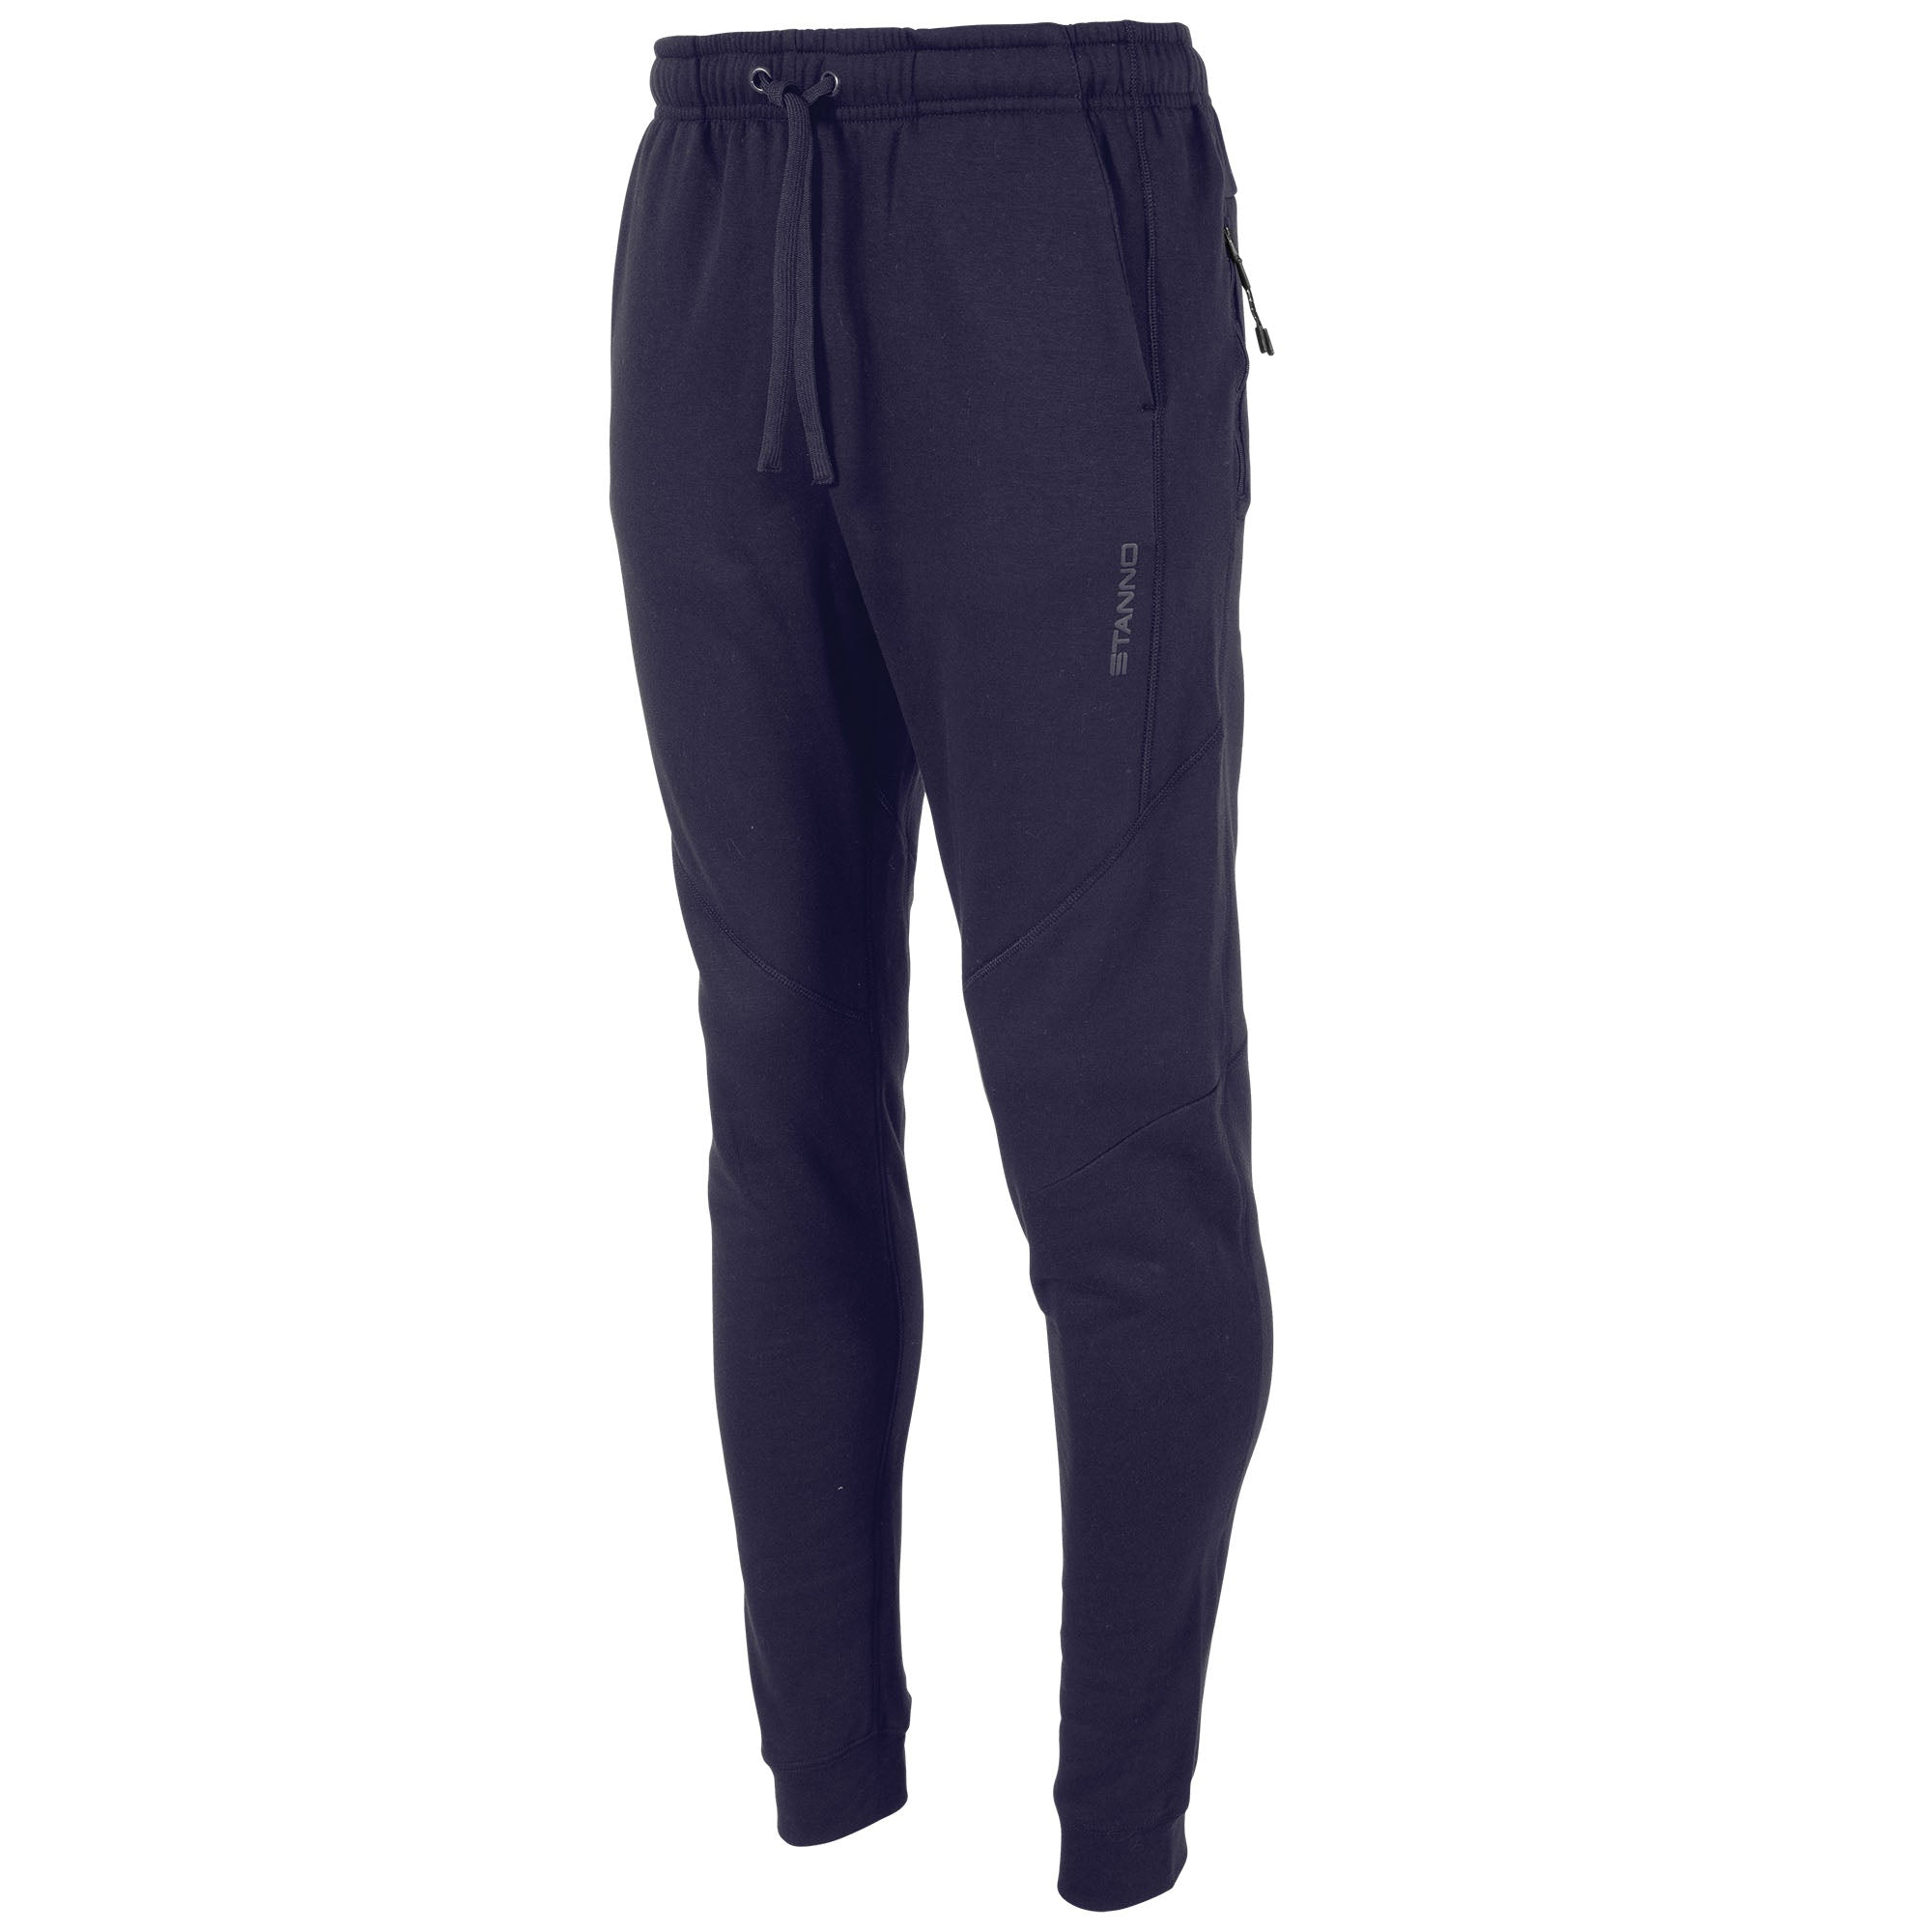 Front view of navy Stanno Ease Sweat Pants with 2 side pockets and drawstring cord on waistband.